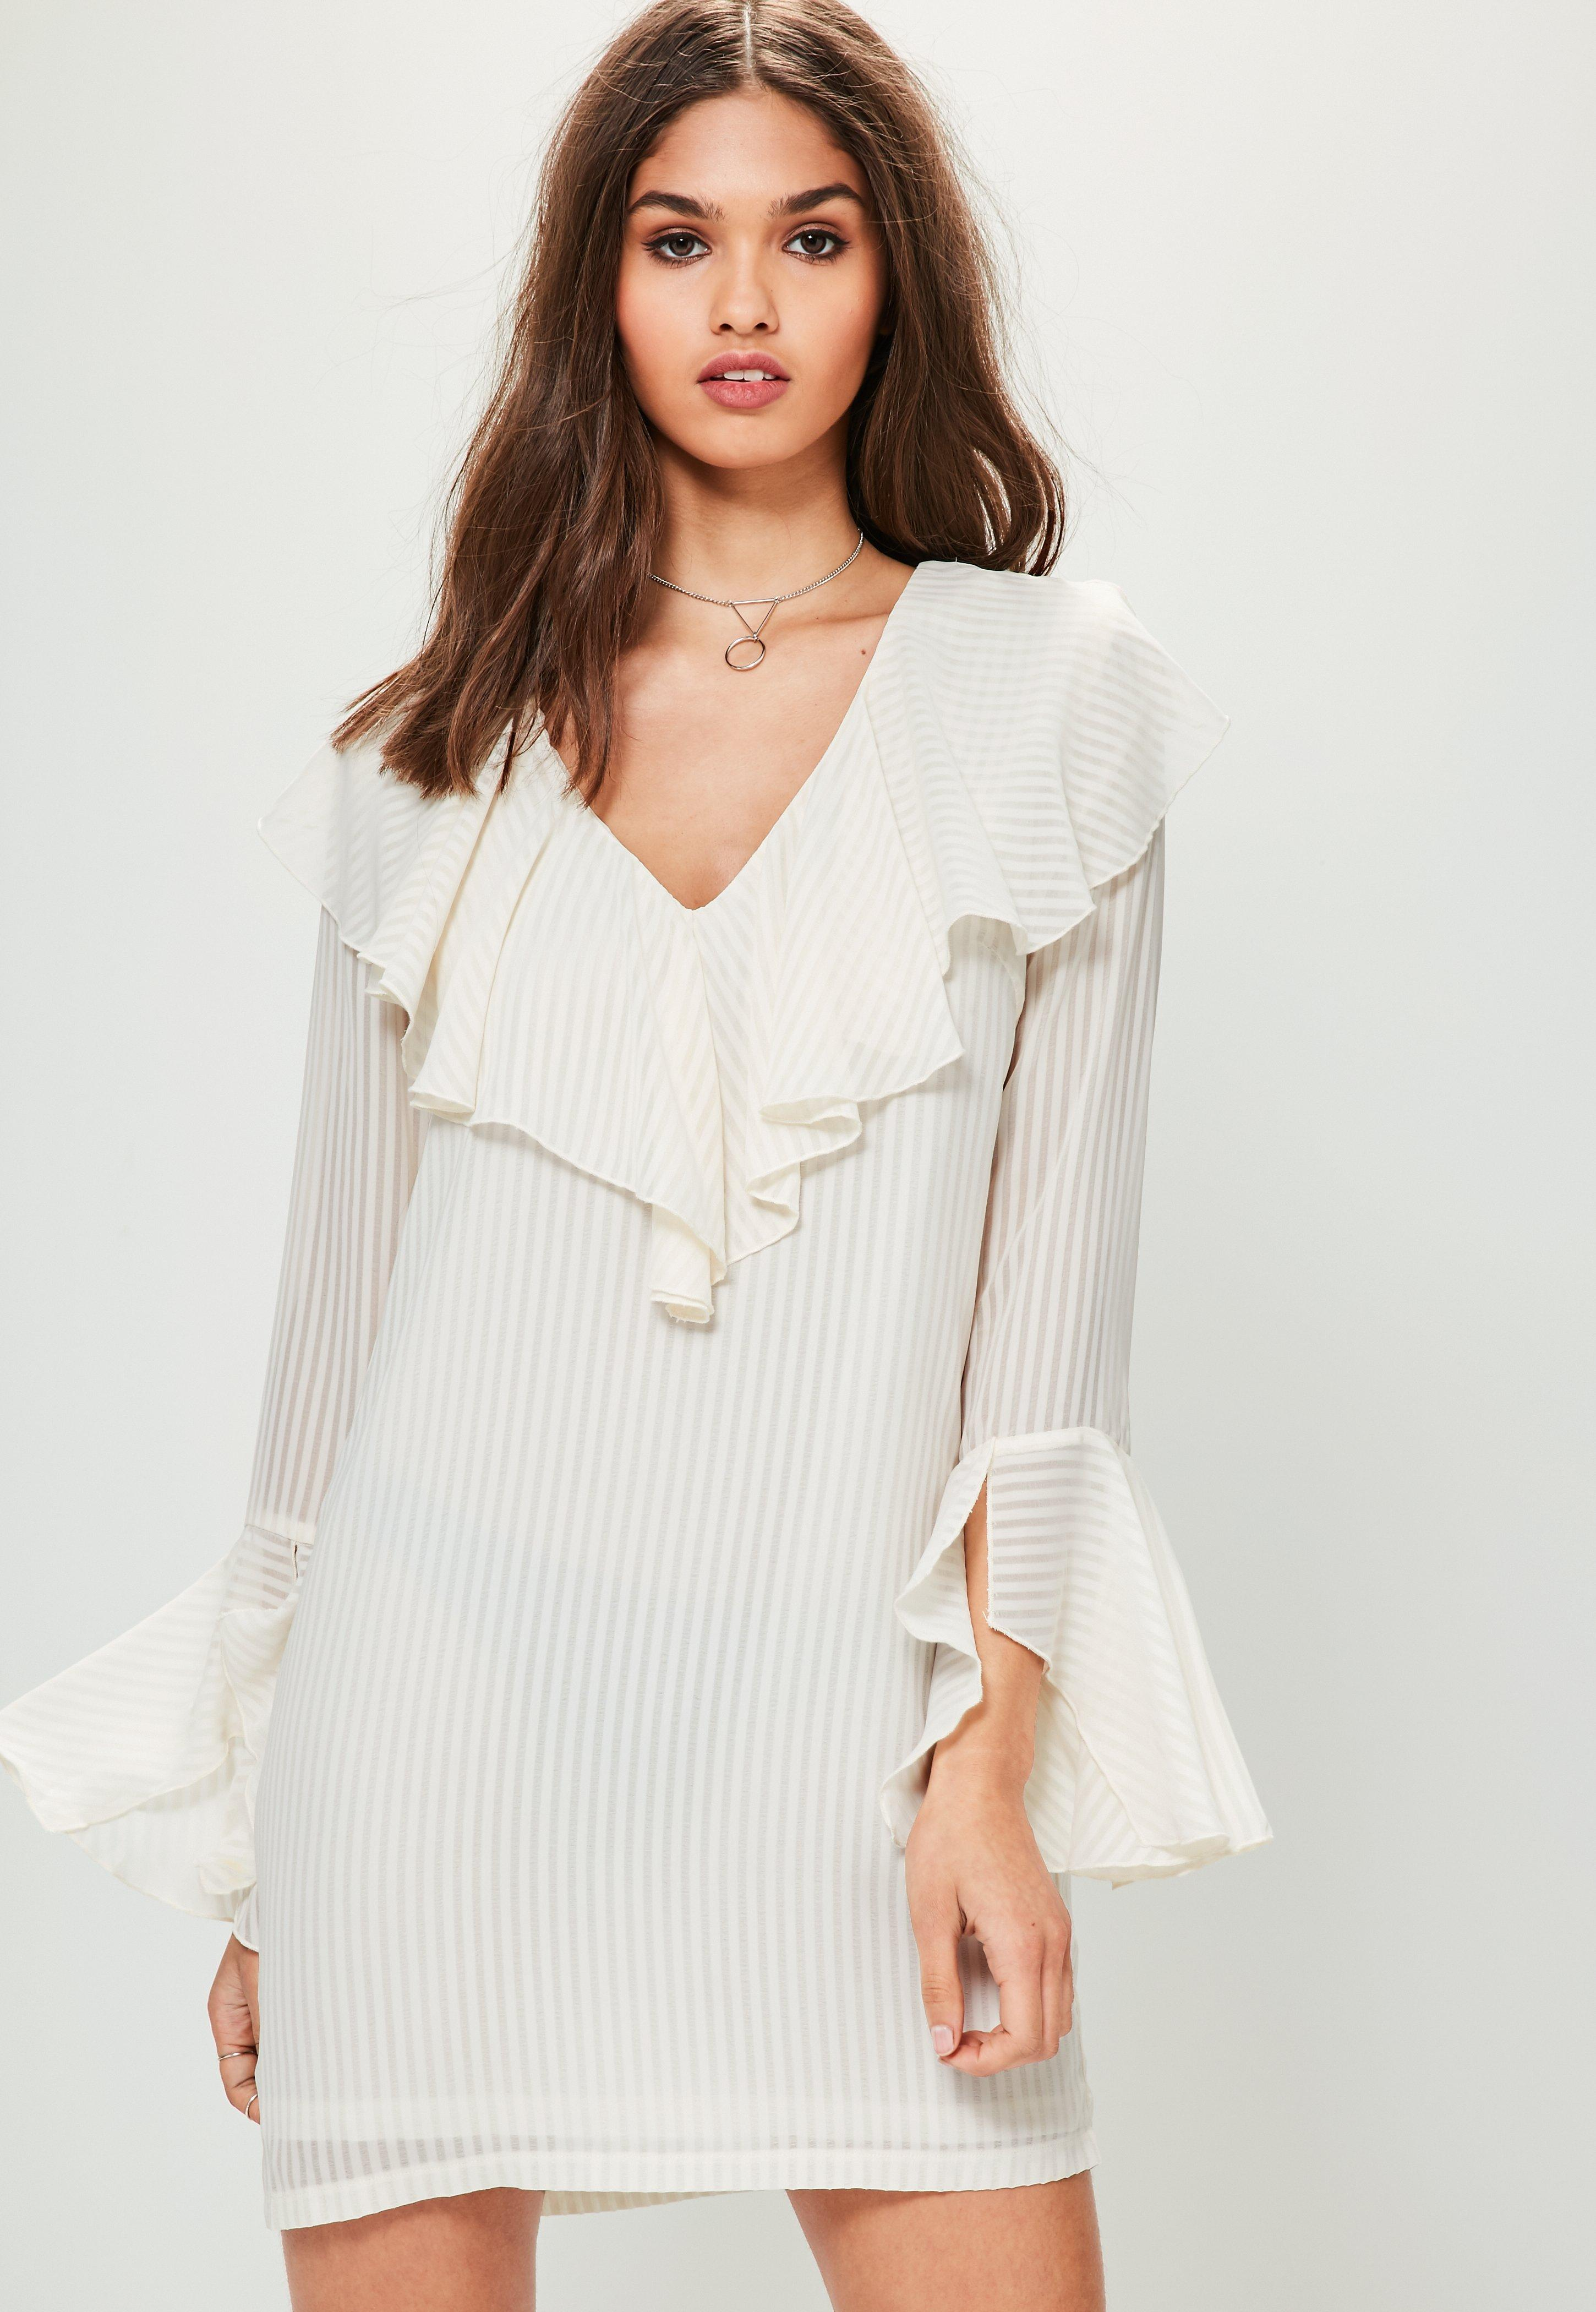 Wedding White Long Sleeve Dress long sleeve dresses with sleeves missguided white frill striped shirt dress